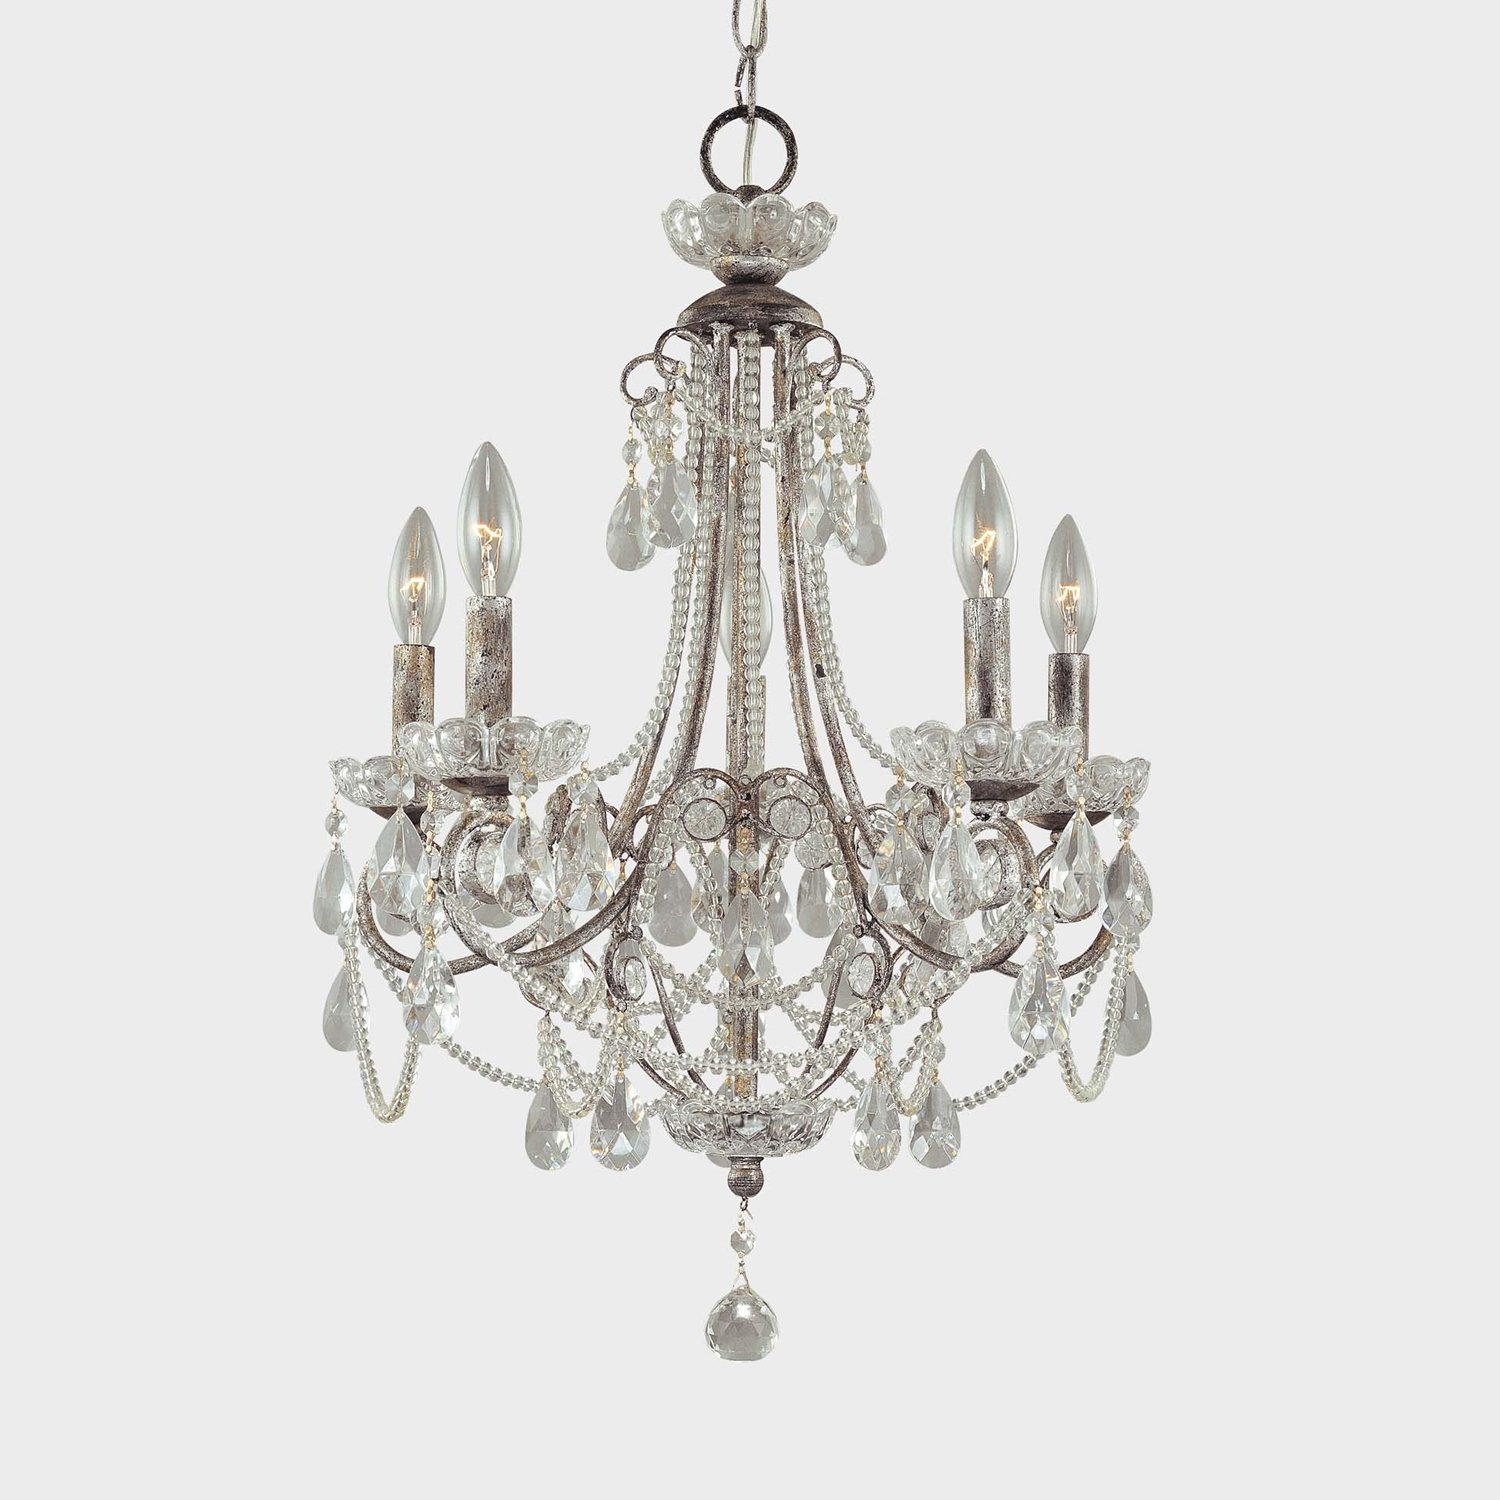 how do i love thee: chandelier chic